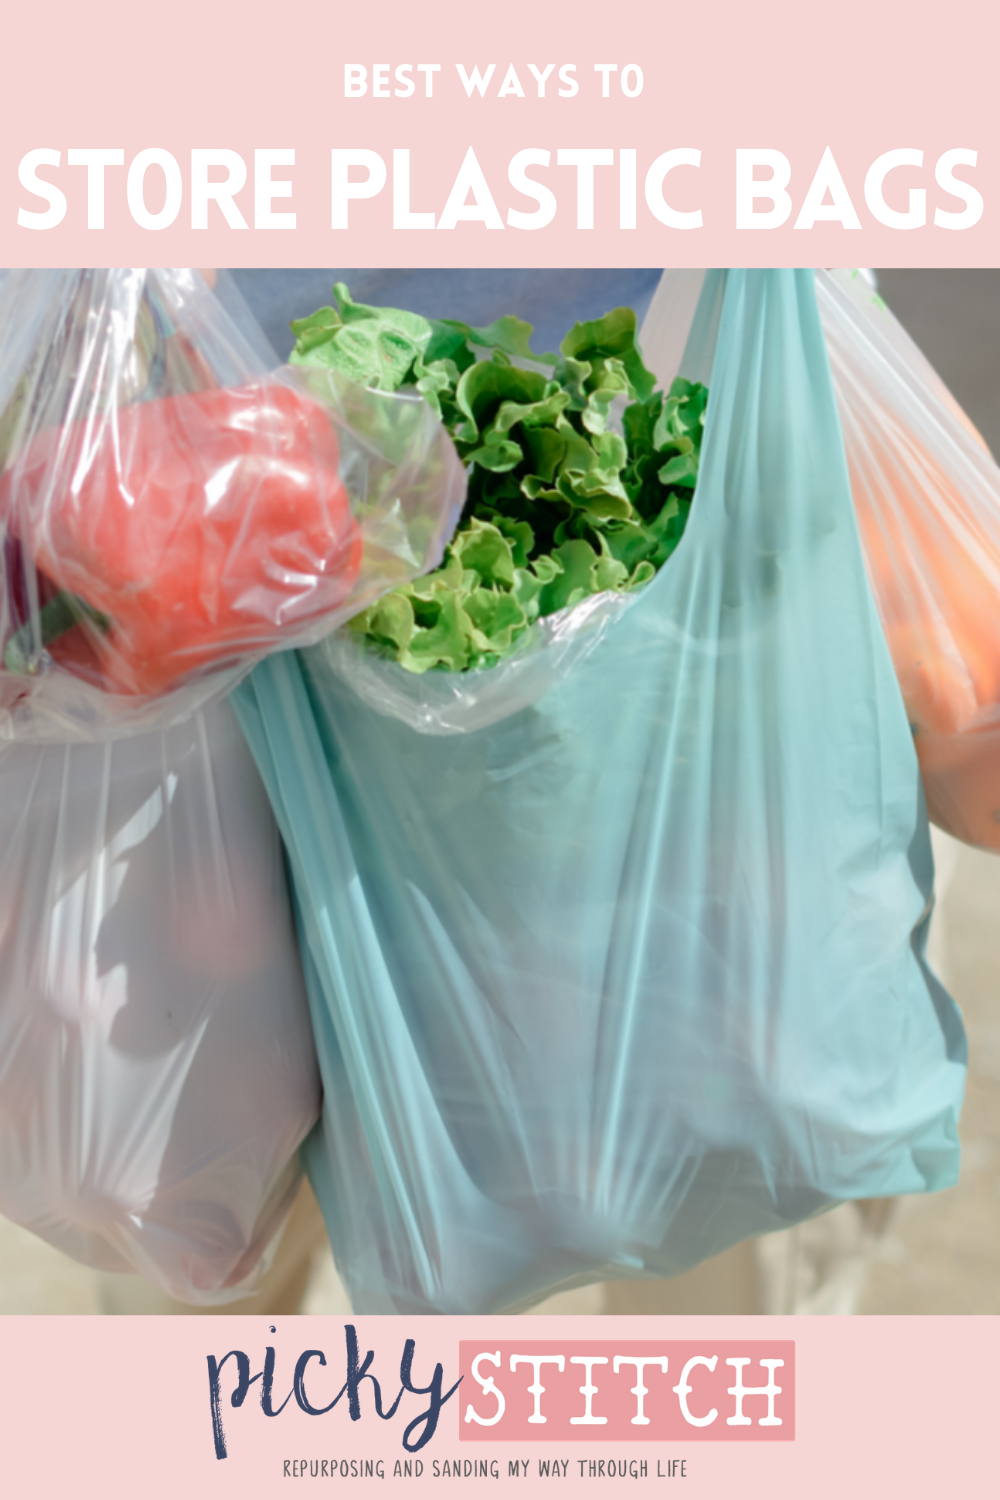 Plastic bags can be a pain in the butt to store! Use these easy tips and tricks for simple ways to store plastic bags in your own home. These will help you save space AND stay organized. #organization #home #pickystitchblog